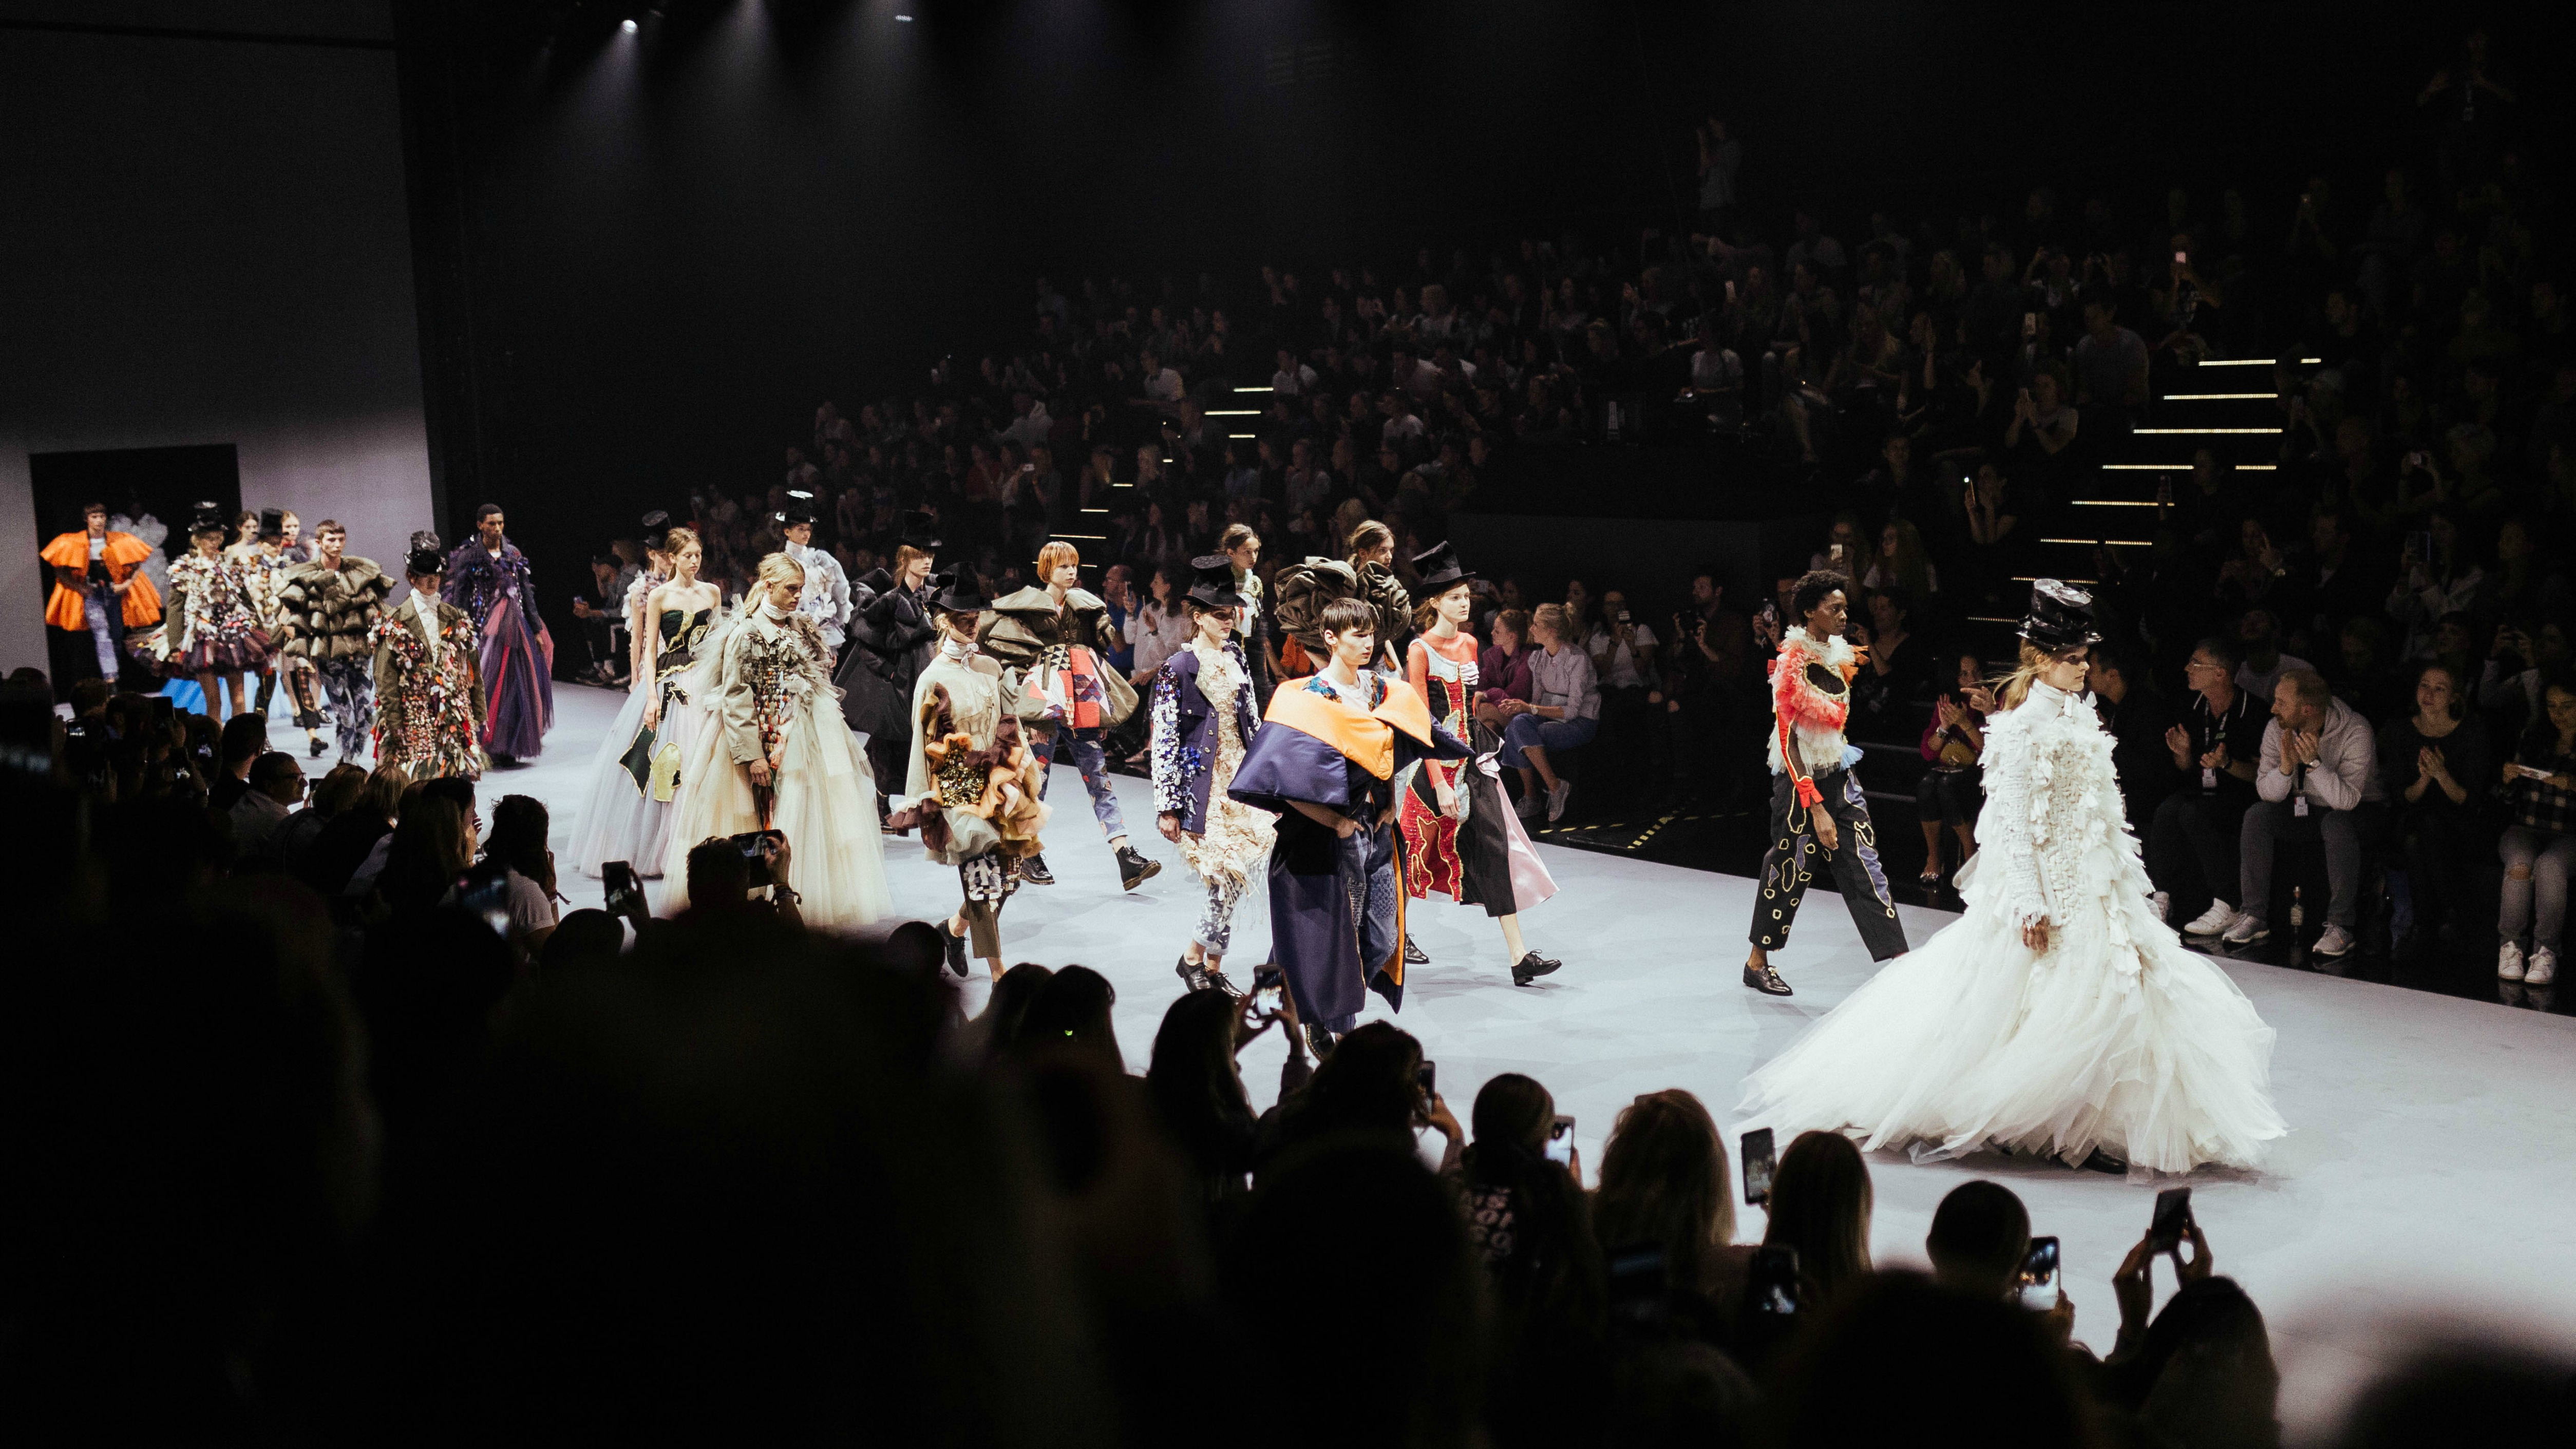 Viktor _ Rolf Fashion Show Samuel Smelty_(c)Bread_ButterbyZalando_Samuel Smelty_45.jpg